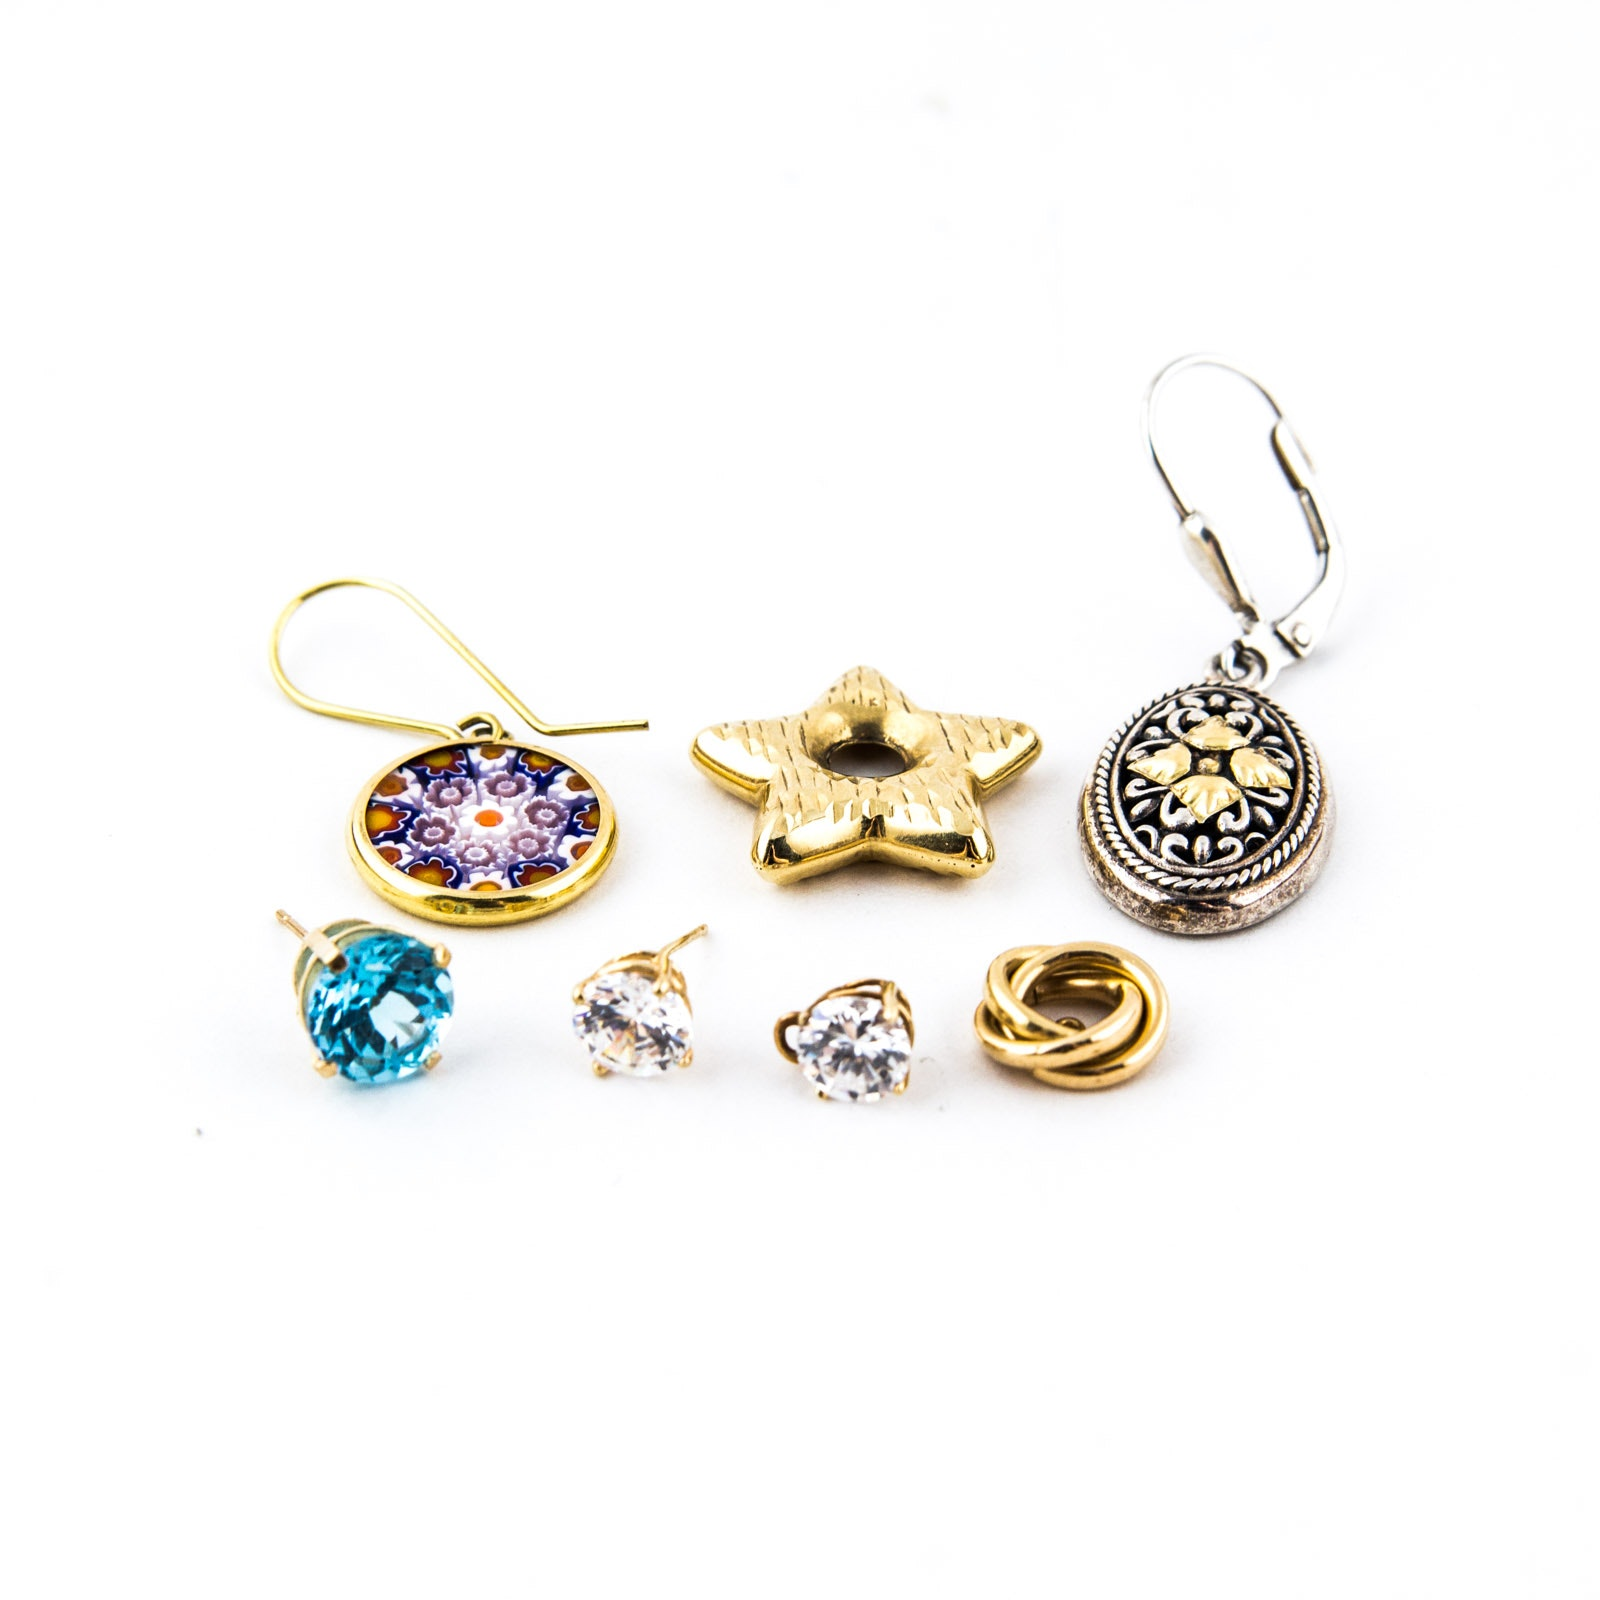 Gold and Silver Jewelry Assortment